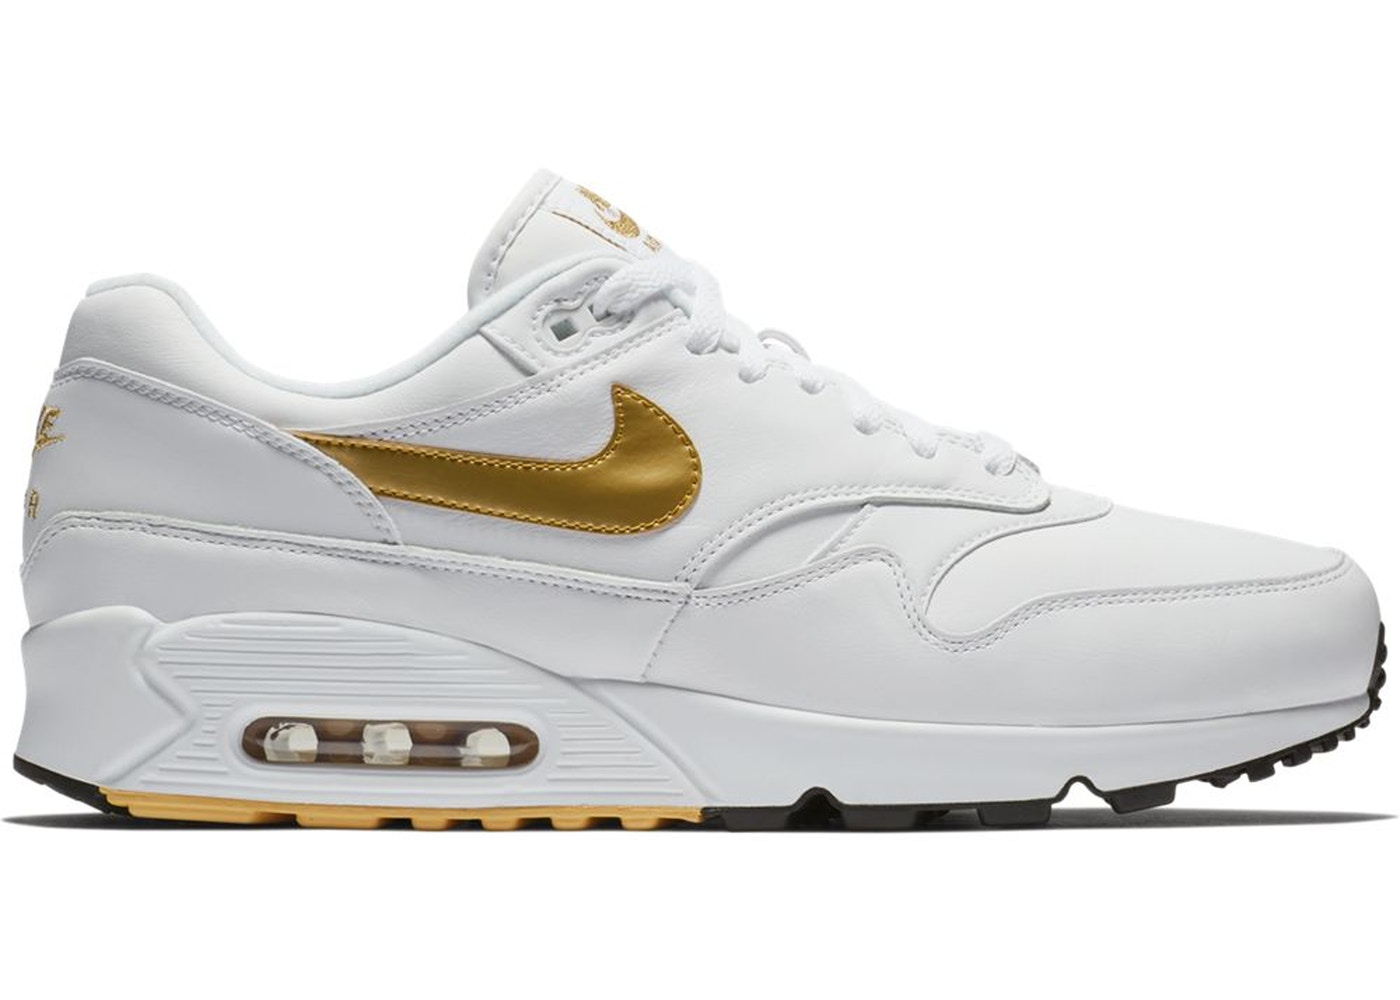 c98e356dc857 Air Max 90 1 White Gold - AJ7695-102